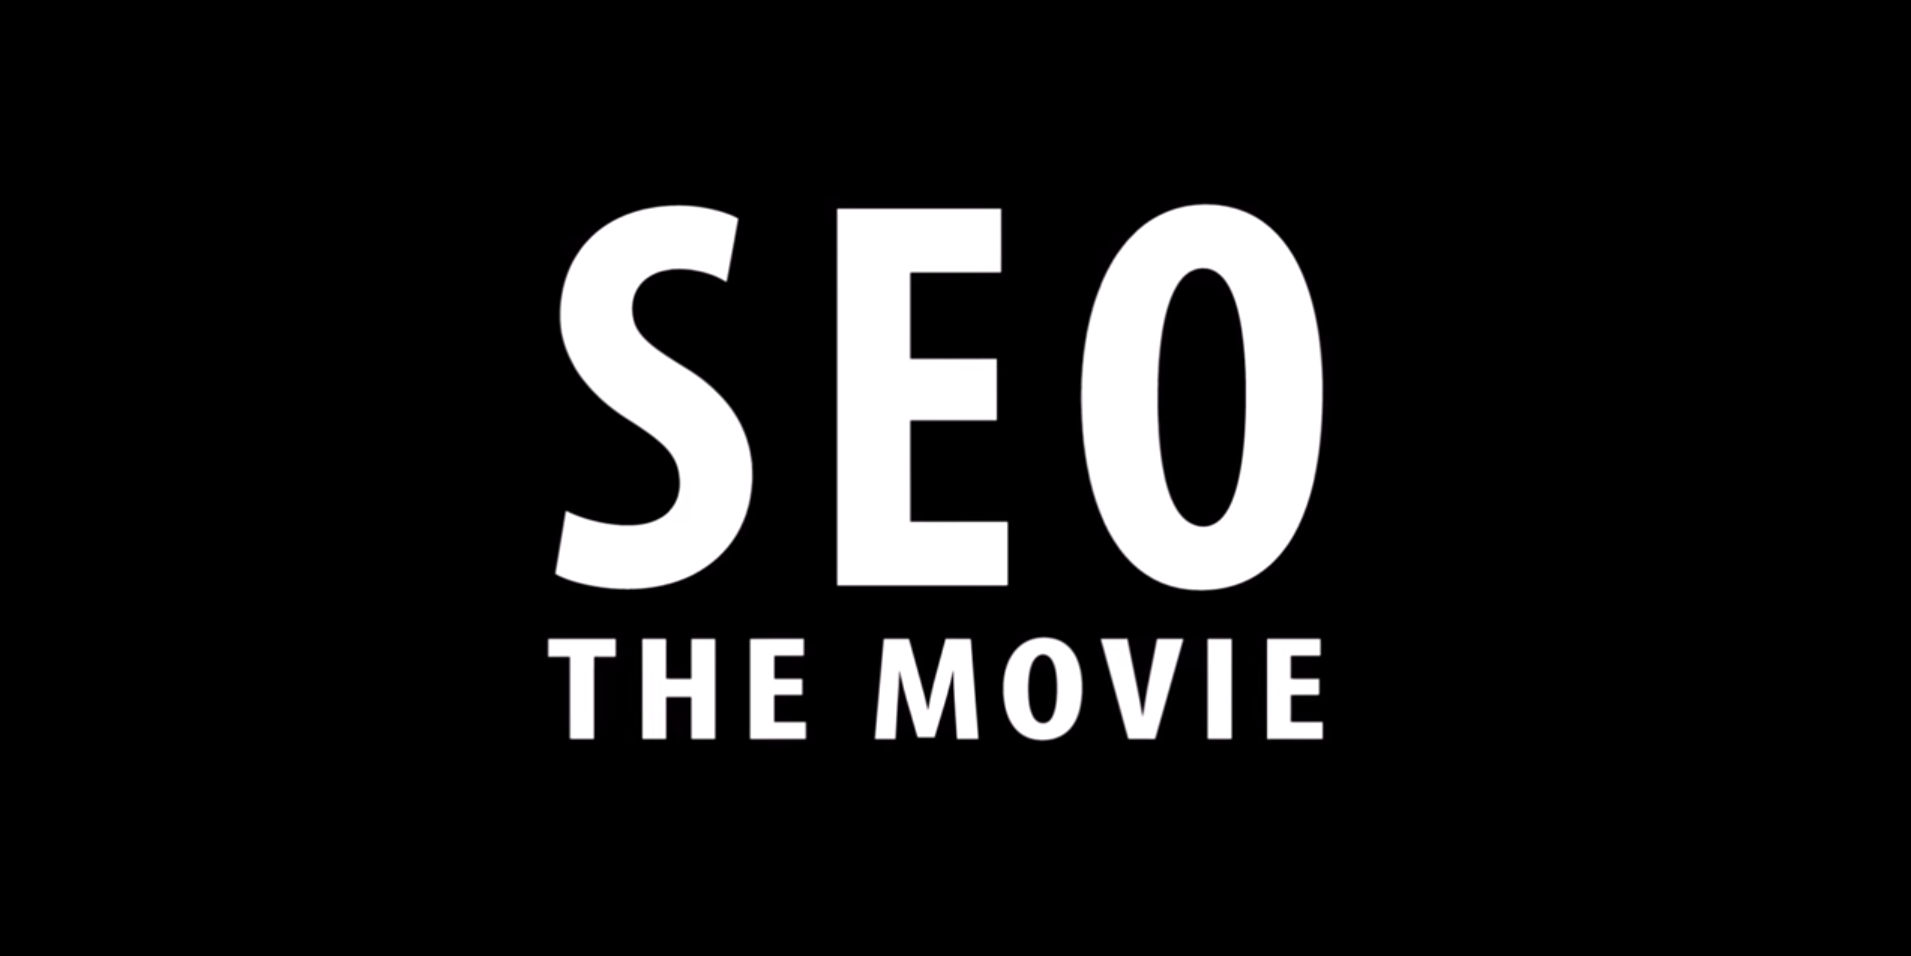 SEO: The Movie Review